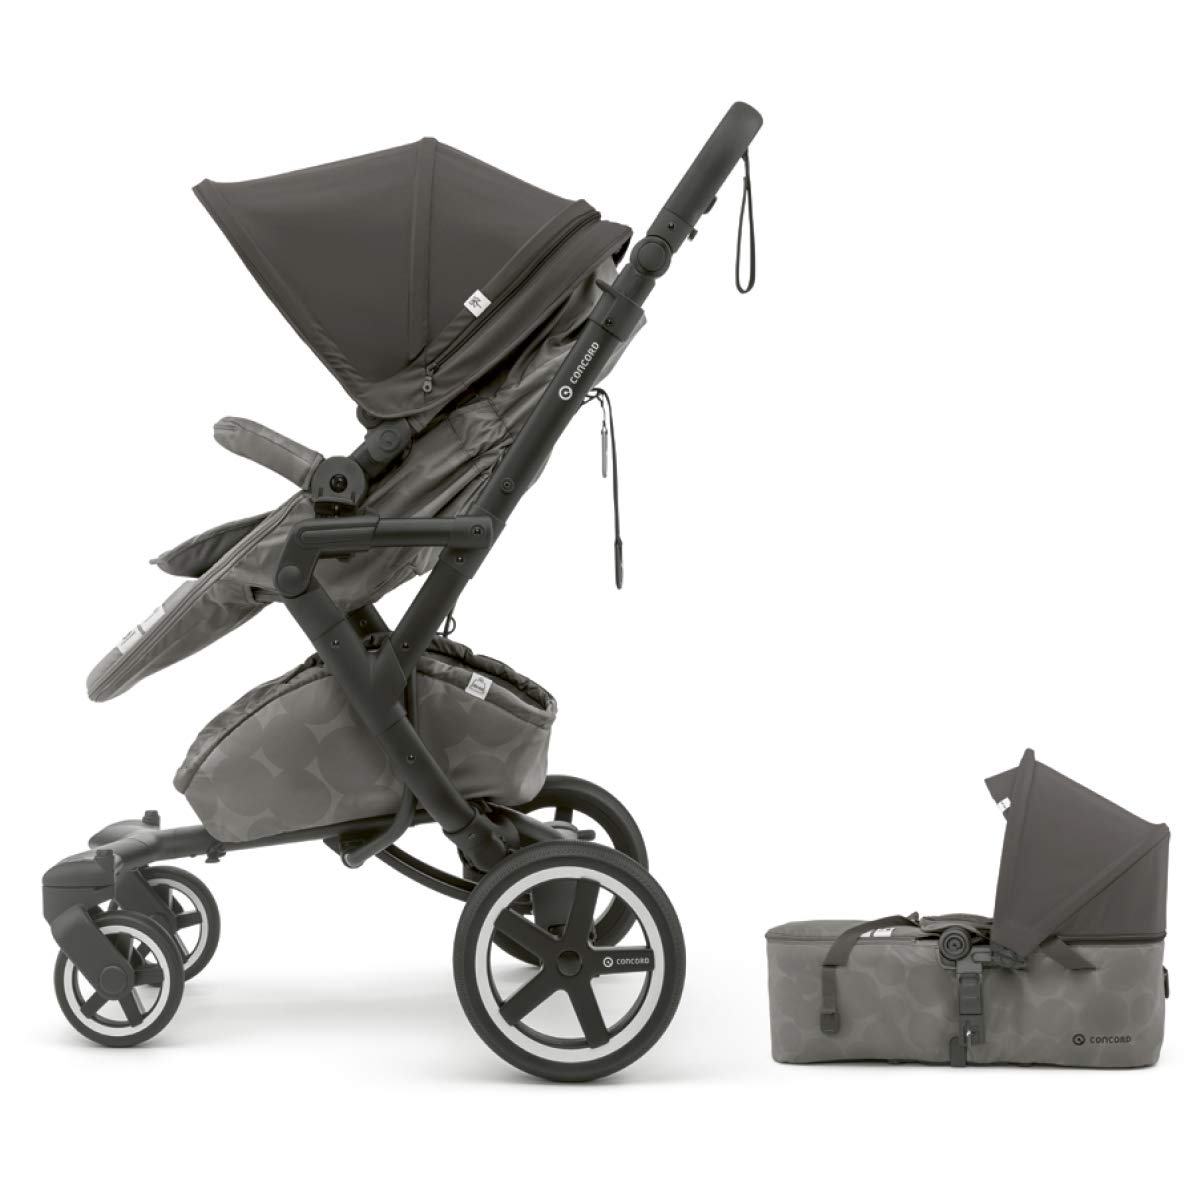 Concord Neo Plus Baby-Set - Coche duo silla y capazo: Amazon ...